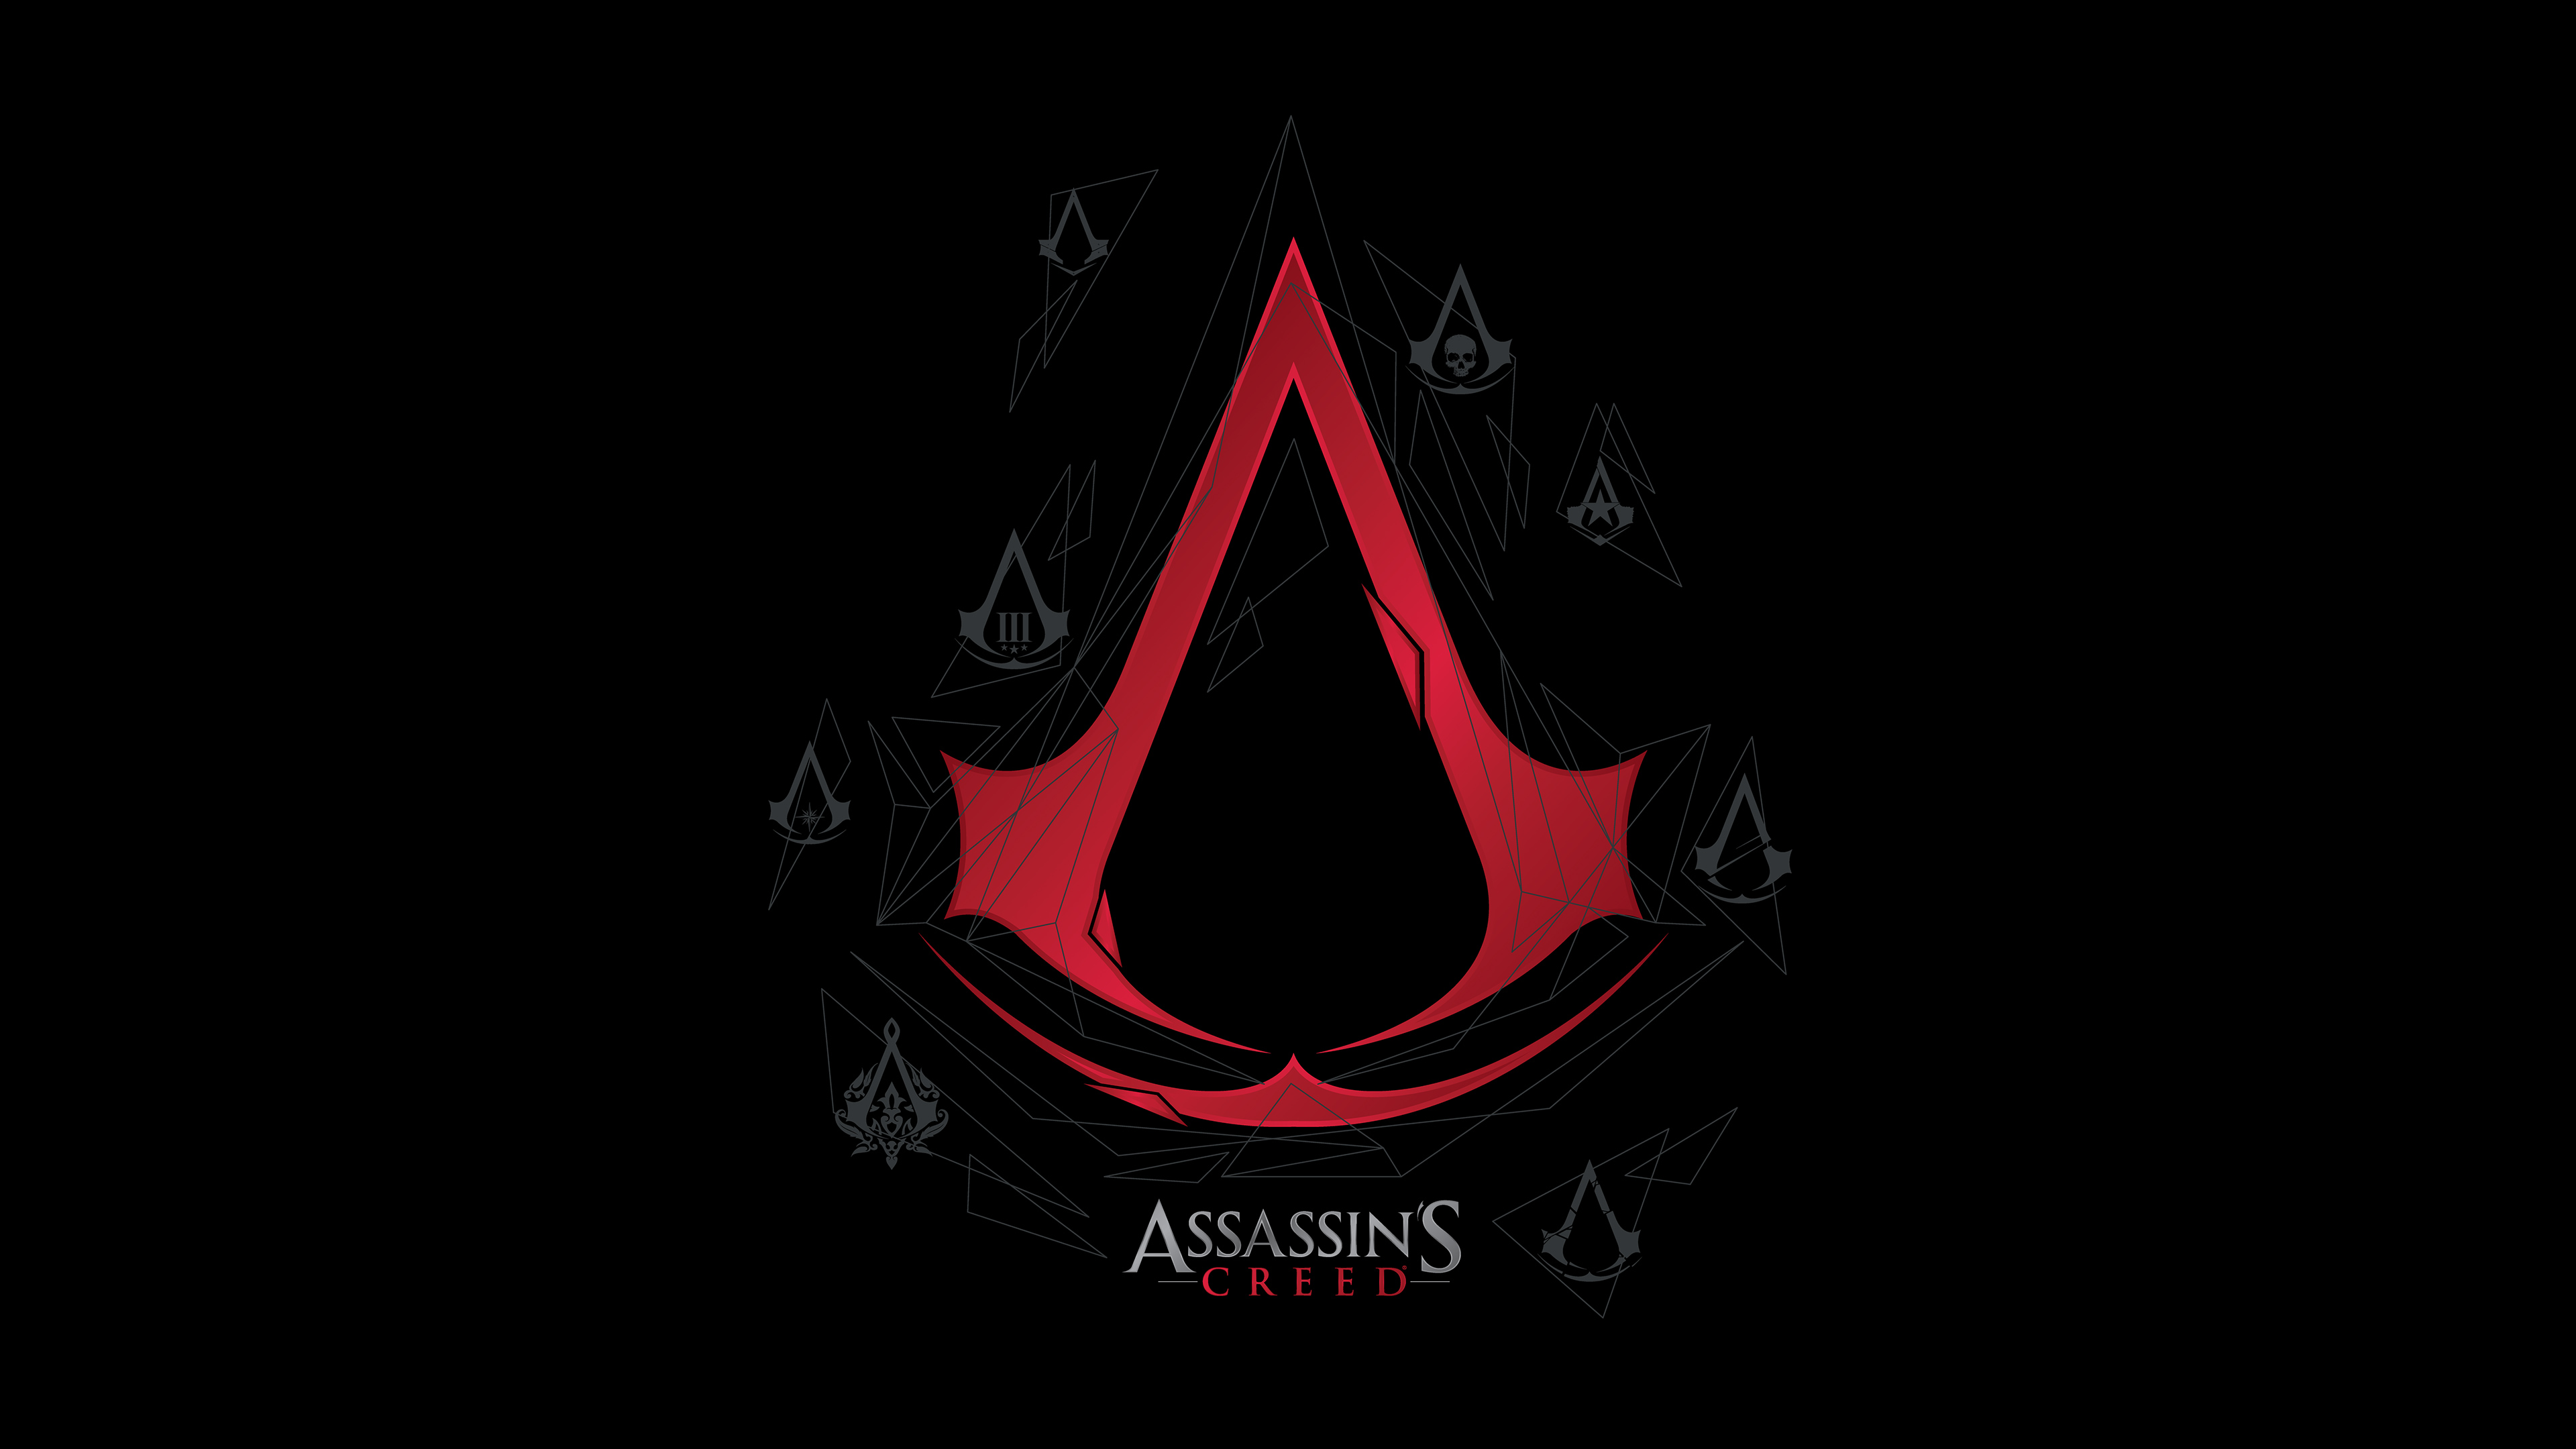 Assassins Creed Game Art 4k Hd Games 4k Wallpapers Images Backgrounds Photos And Pictures